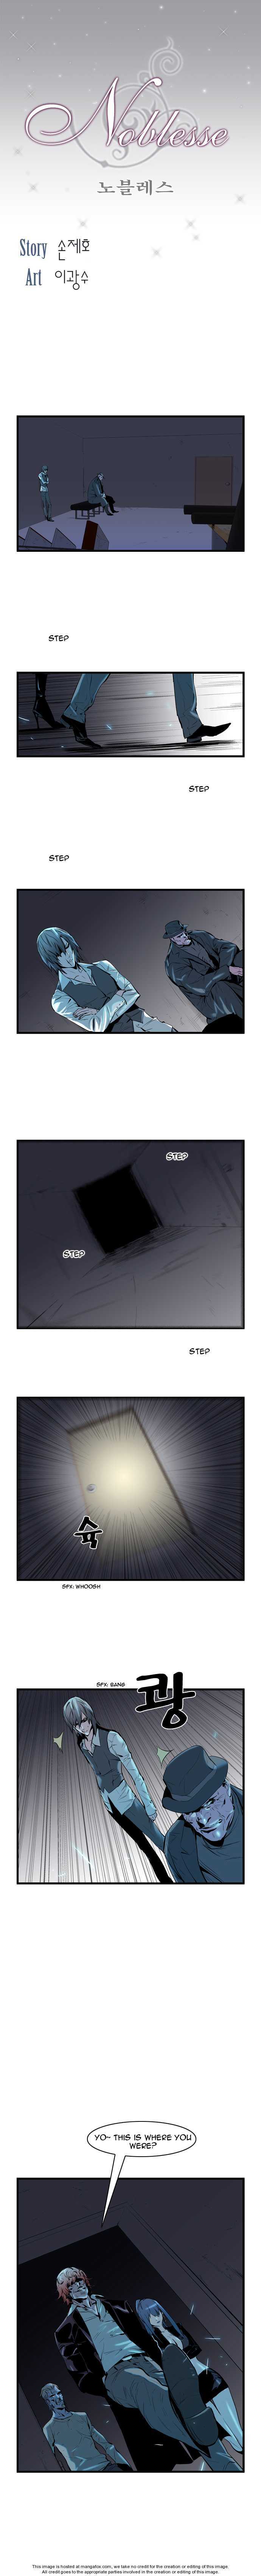 Noblesse 61 Page 1